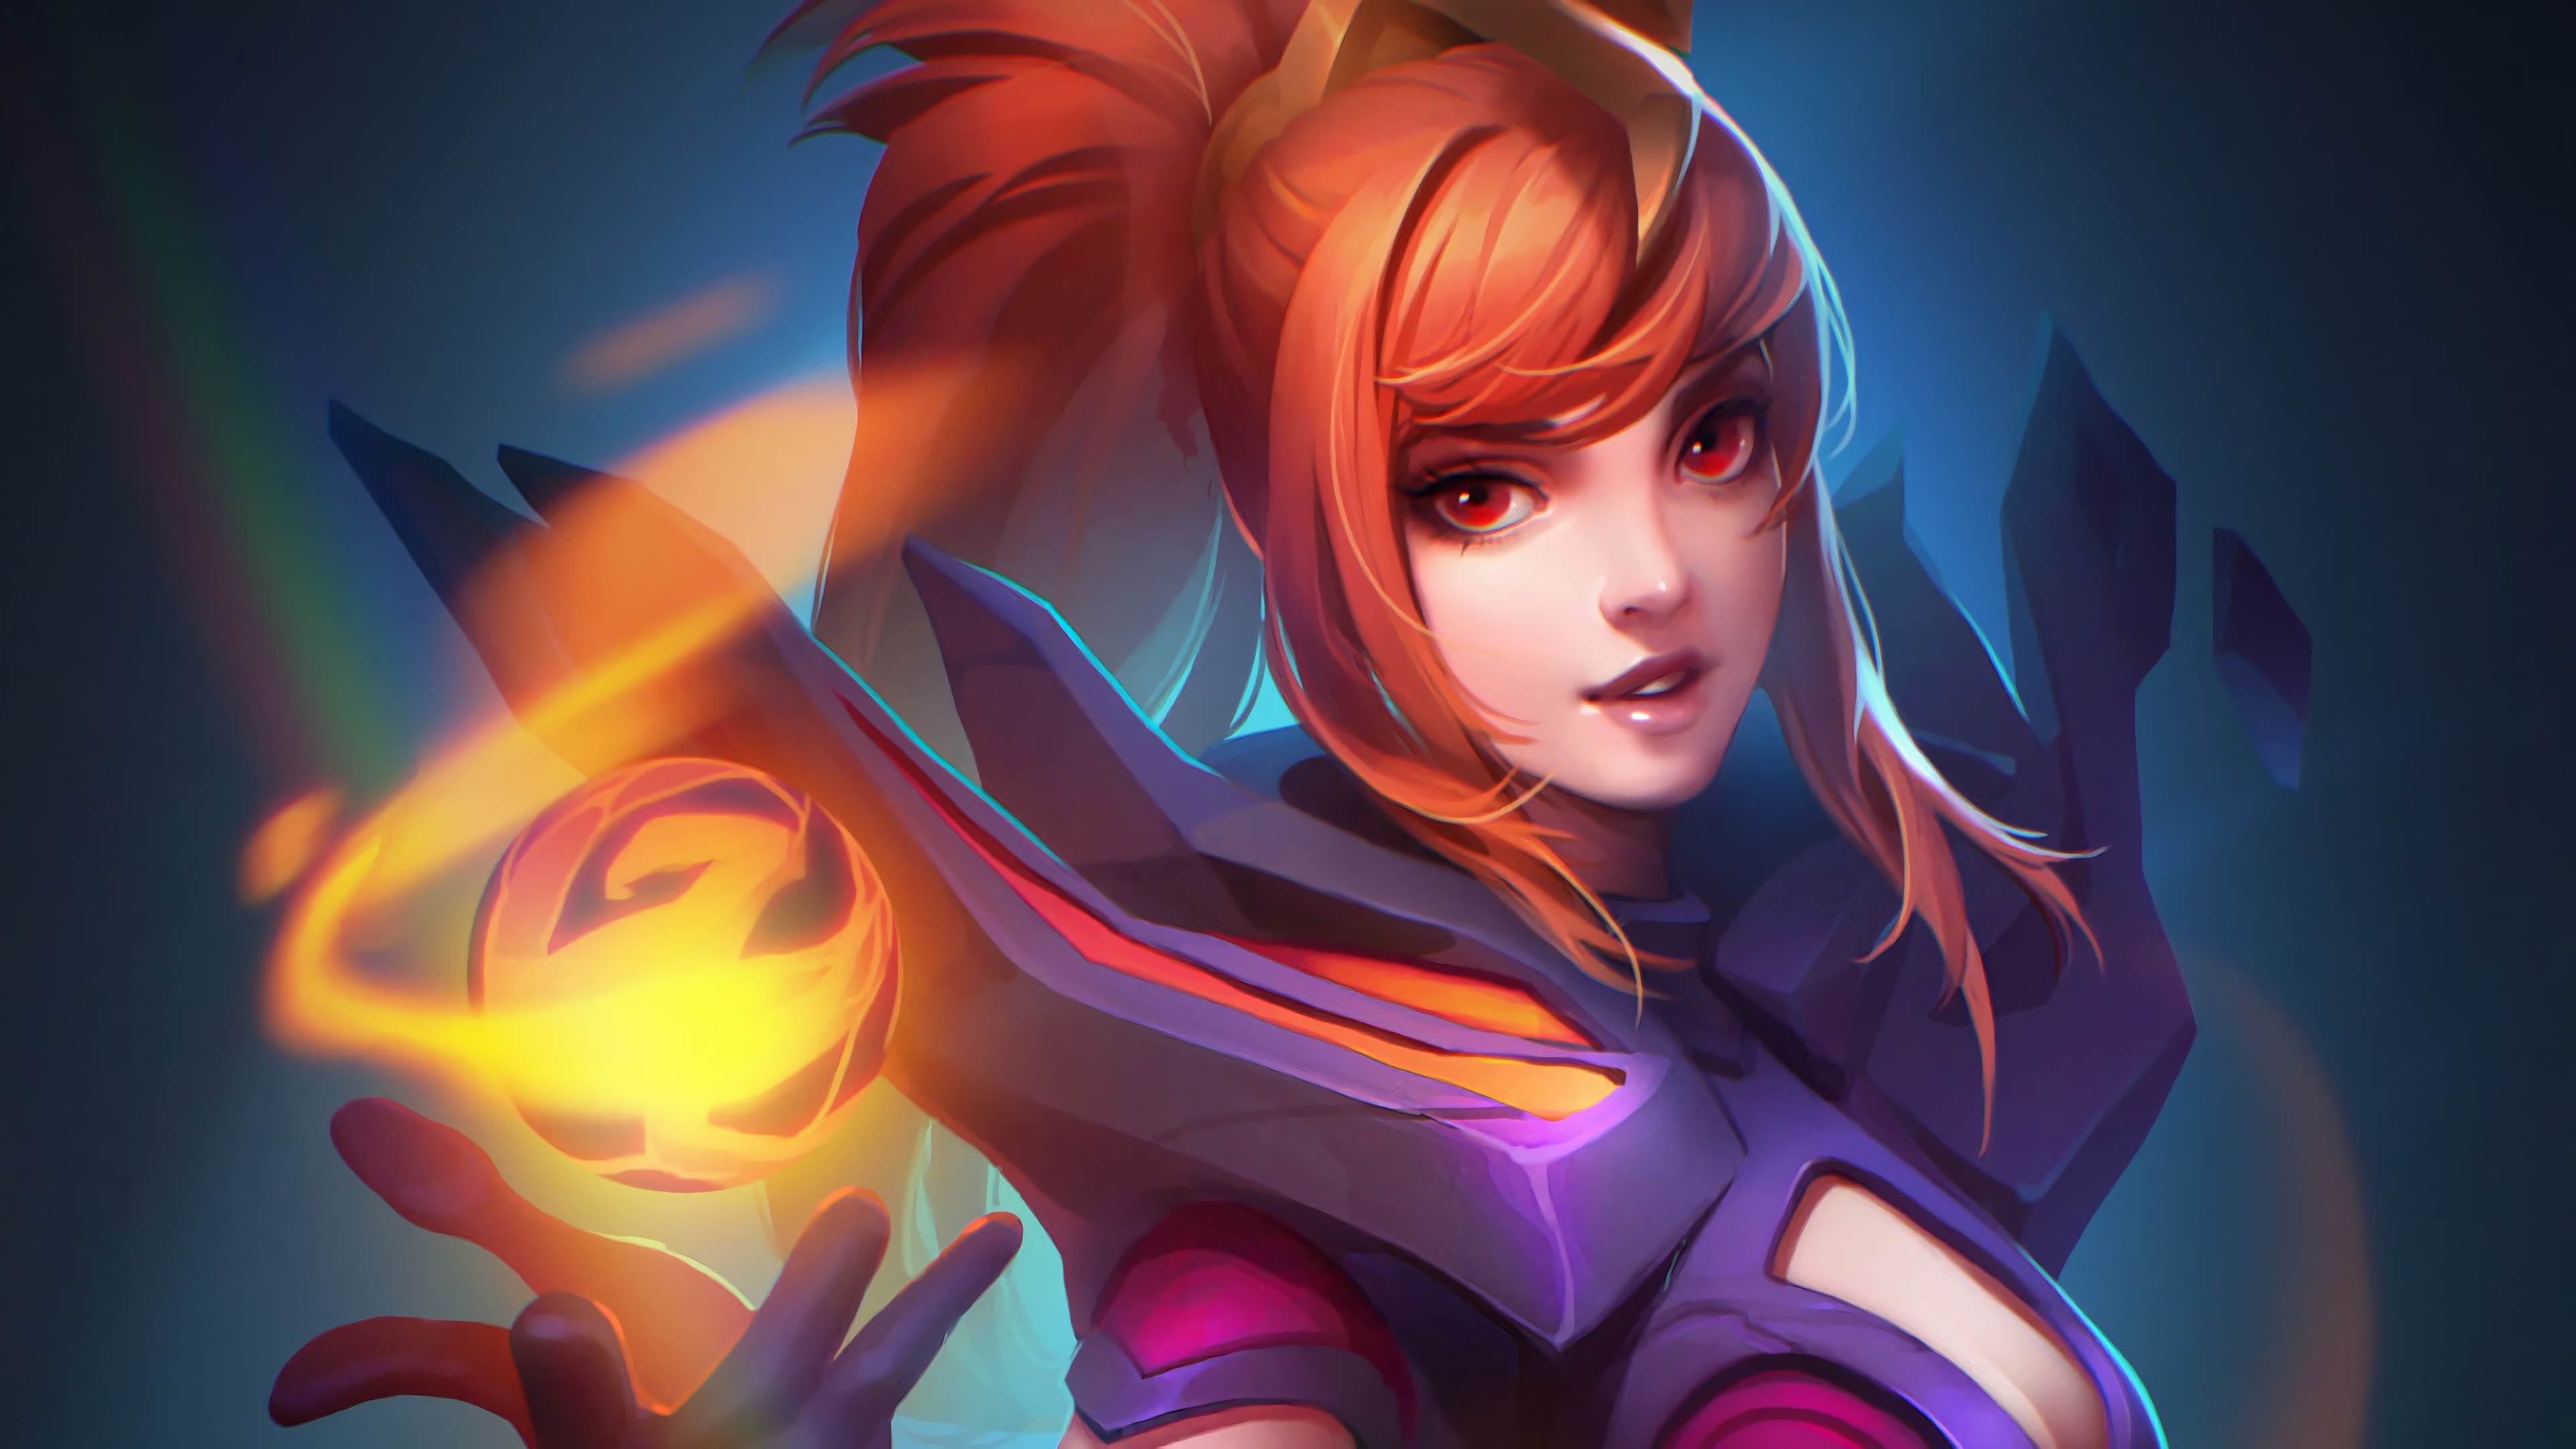 lux elemental league of legends lol 1574103308 - Lux Elemental League of Legends lol - Lux, league of legends